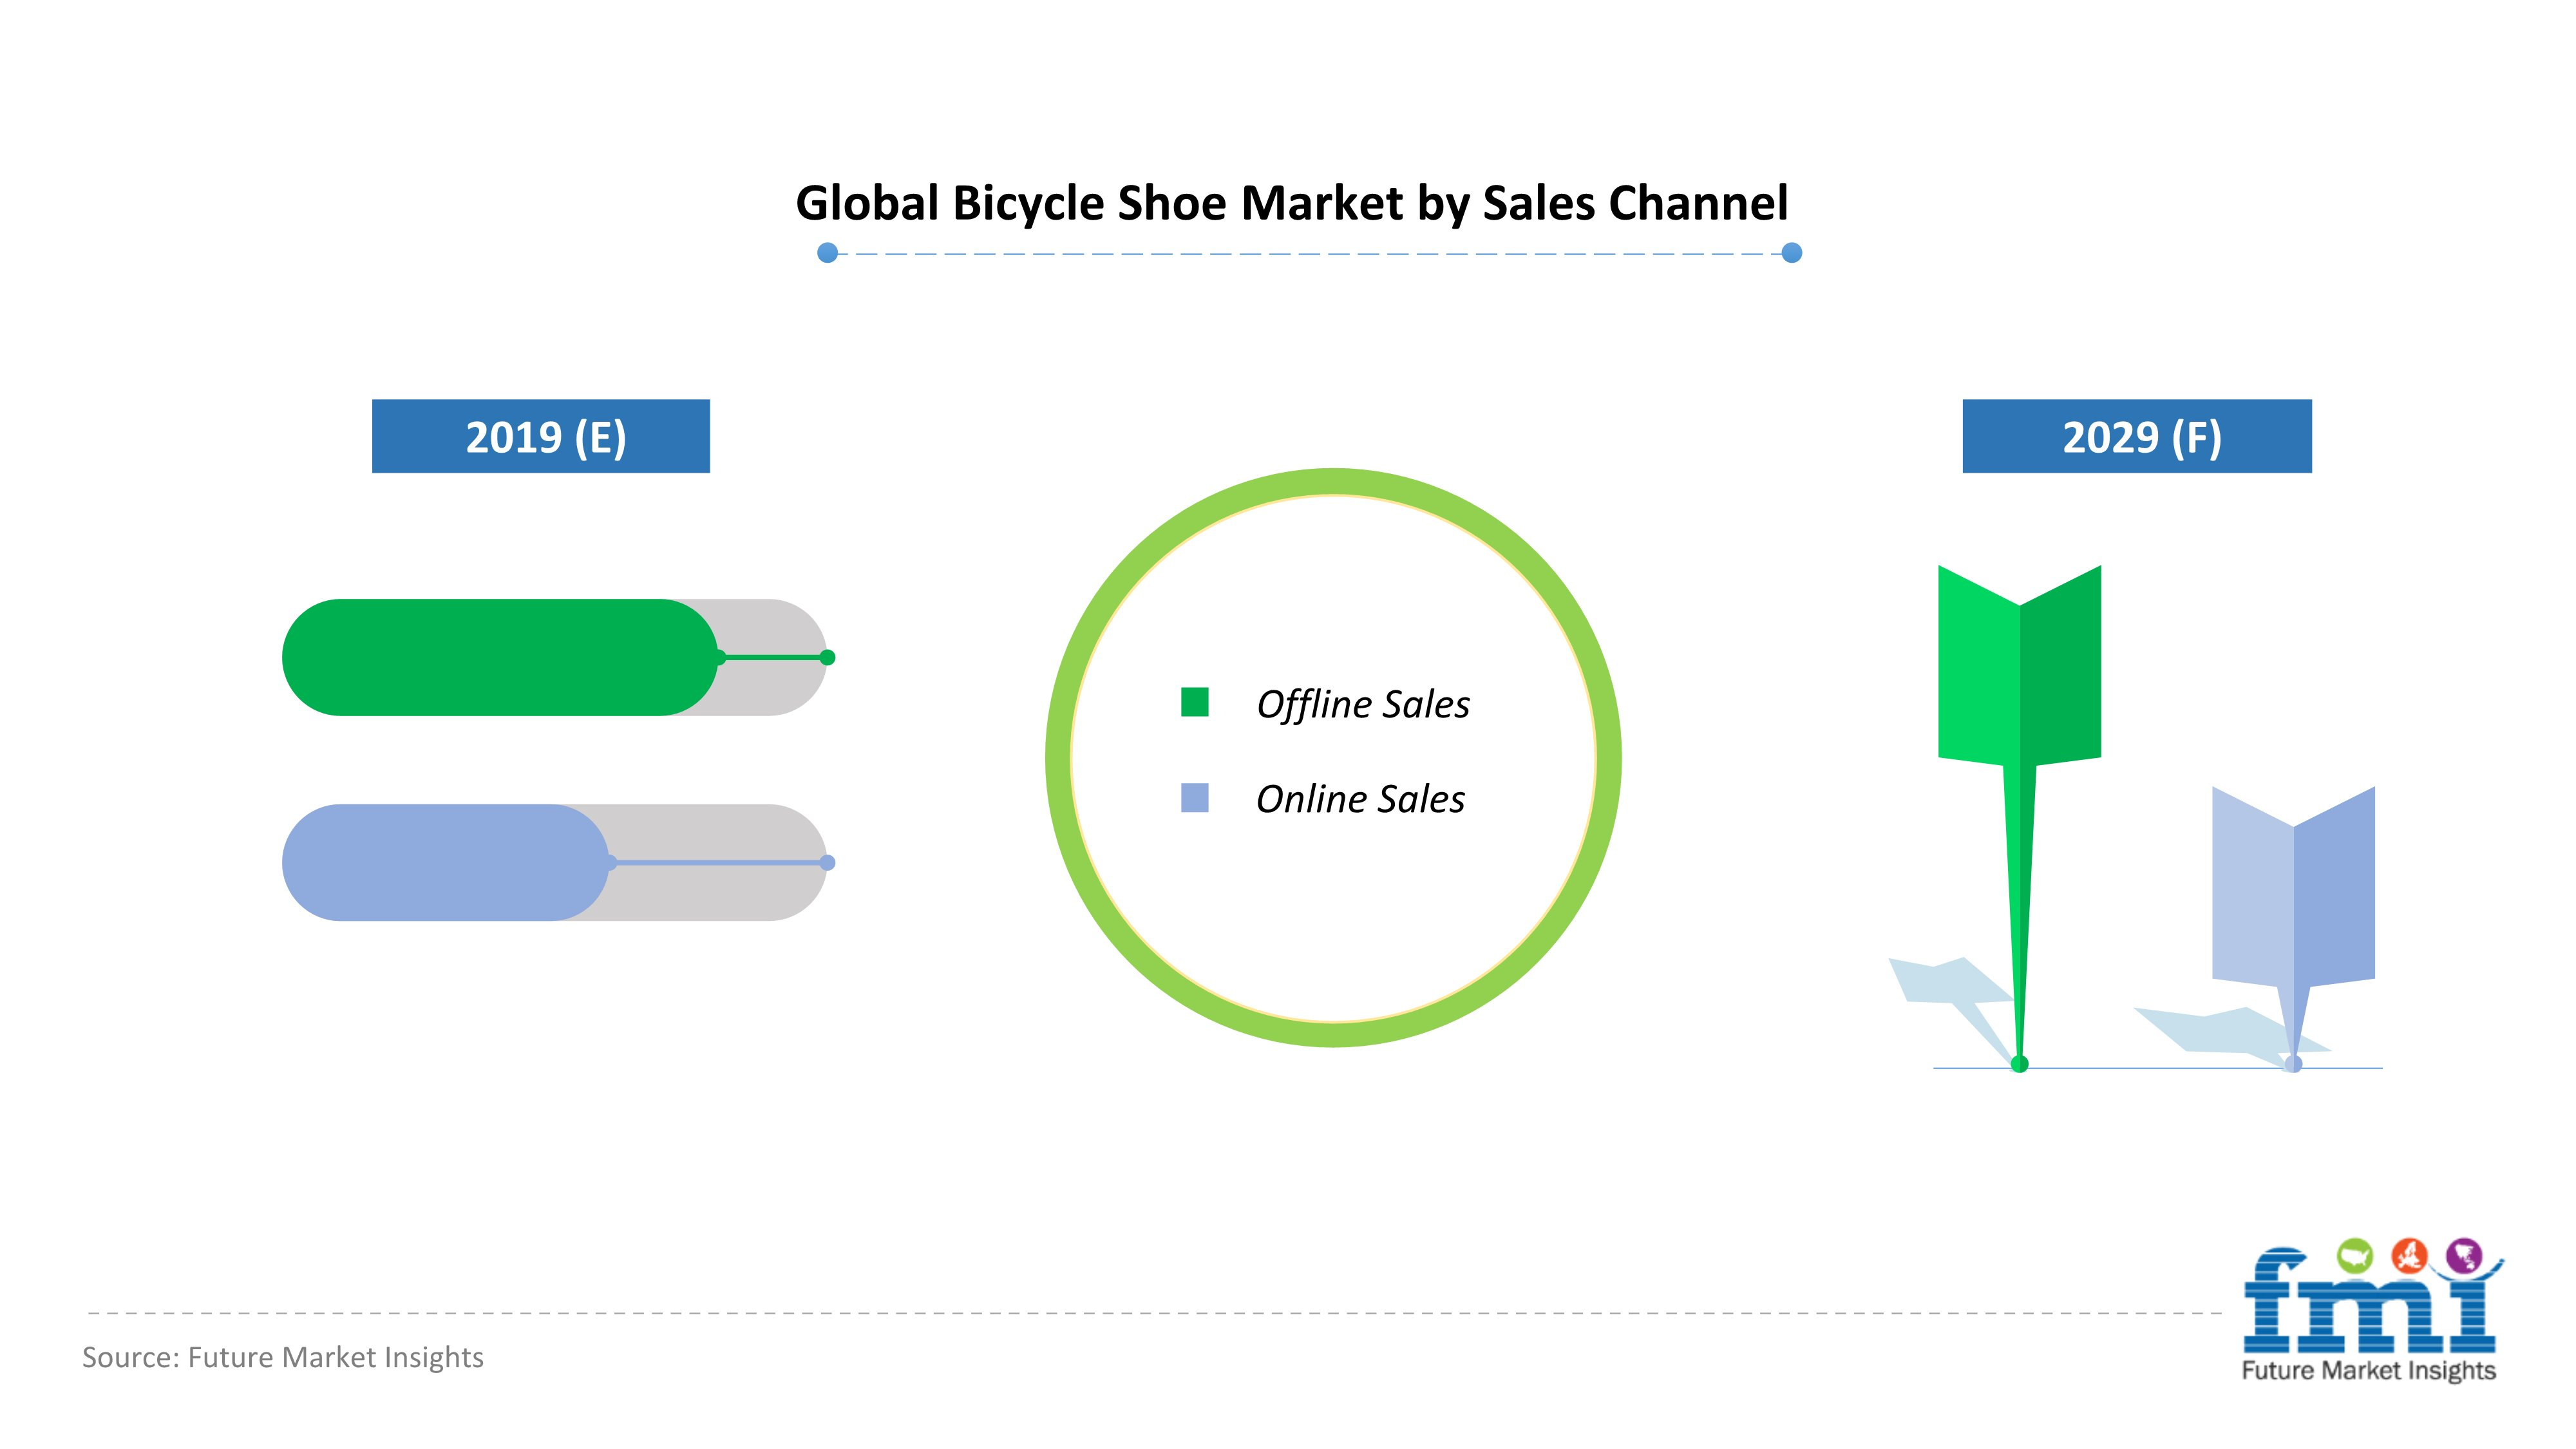 Global Bicycle Shoe Market by Sales Channel